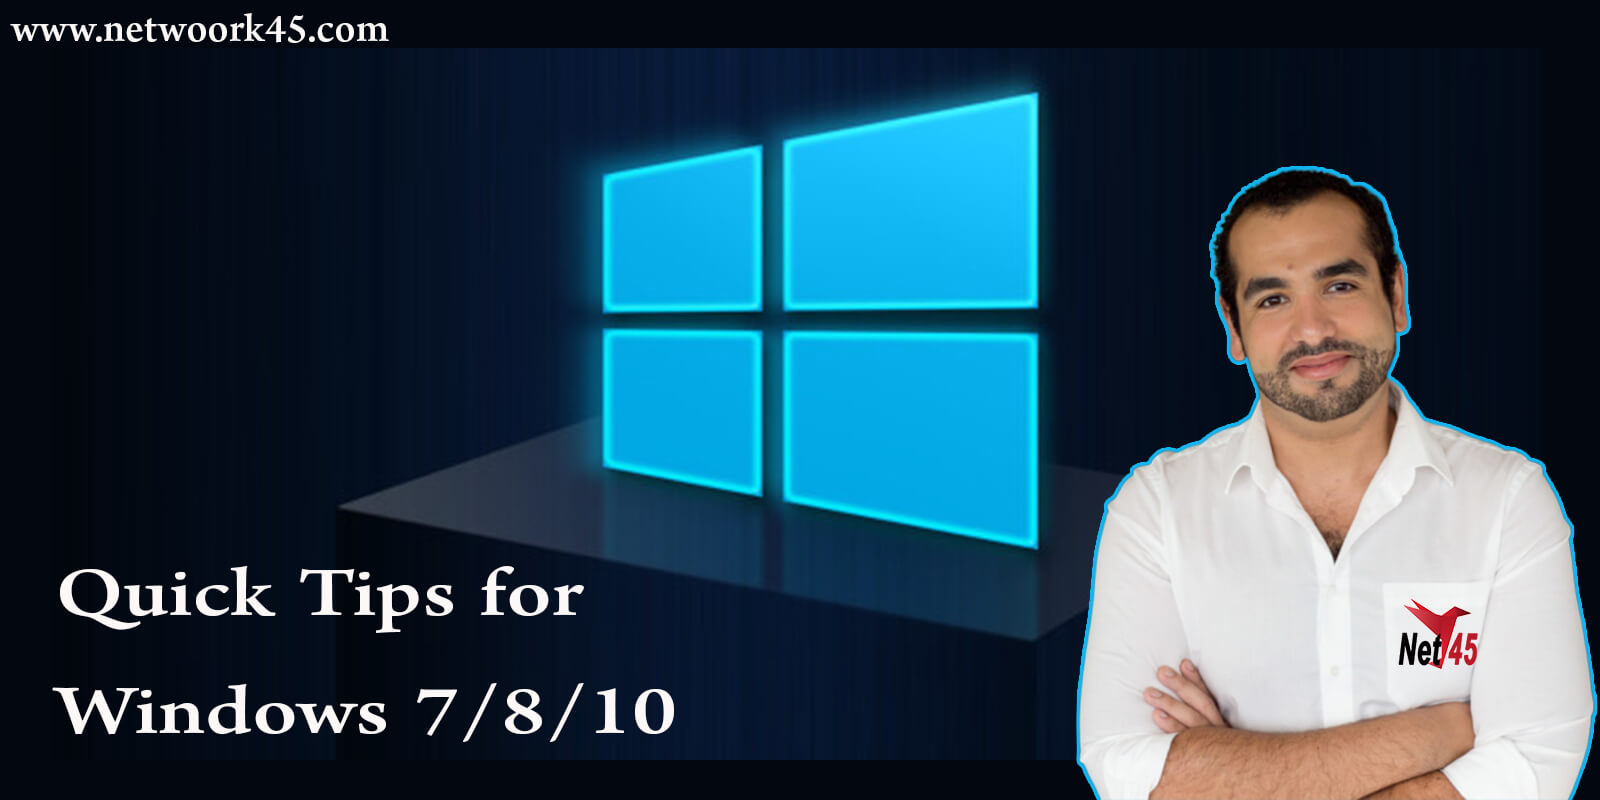 windows 10,windows 7,windows,windows 8,windows 8.1,how to speed up windows 10,windows tips and tricks,microsoft windows (operating system),tips,quick tips on making pc faster.(windows 7/8/10) 2k16,increase speed of windows 10,quick launch toolbar windows 10,12 tips to speed up windows 10 performance for free,quick launch windows 10,best settings for windows 10,quick launch bar windows 7